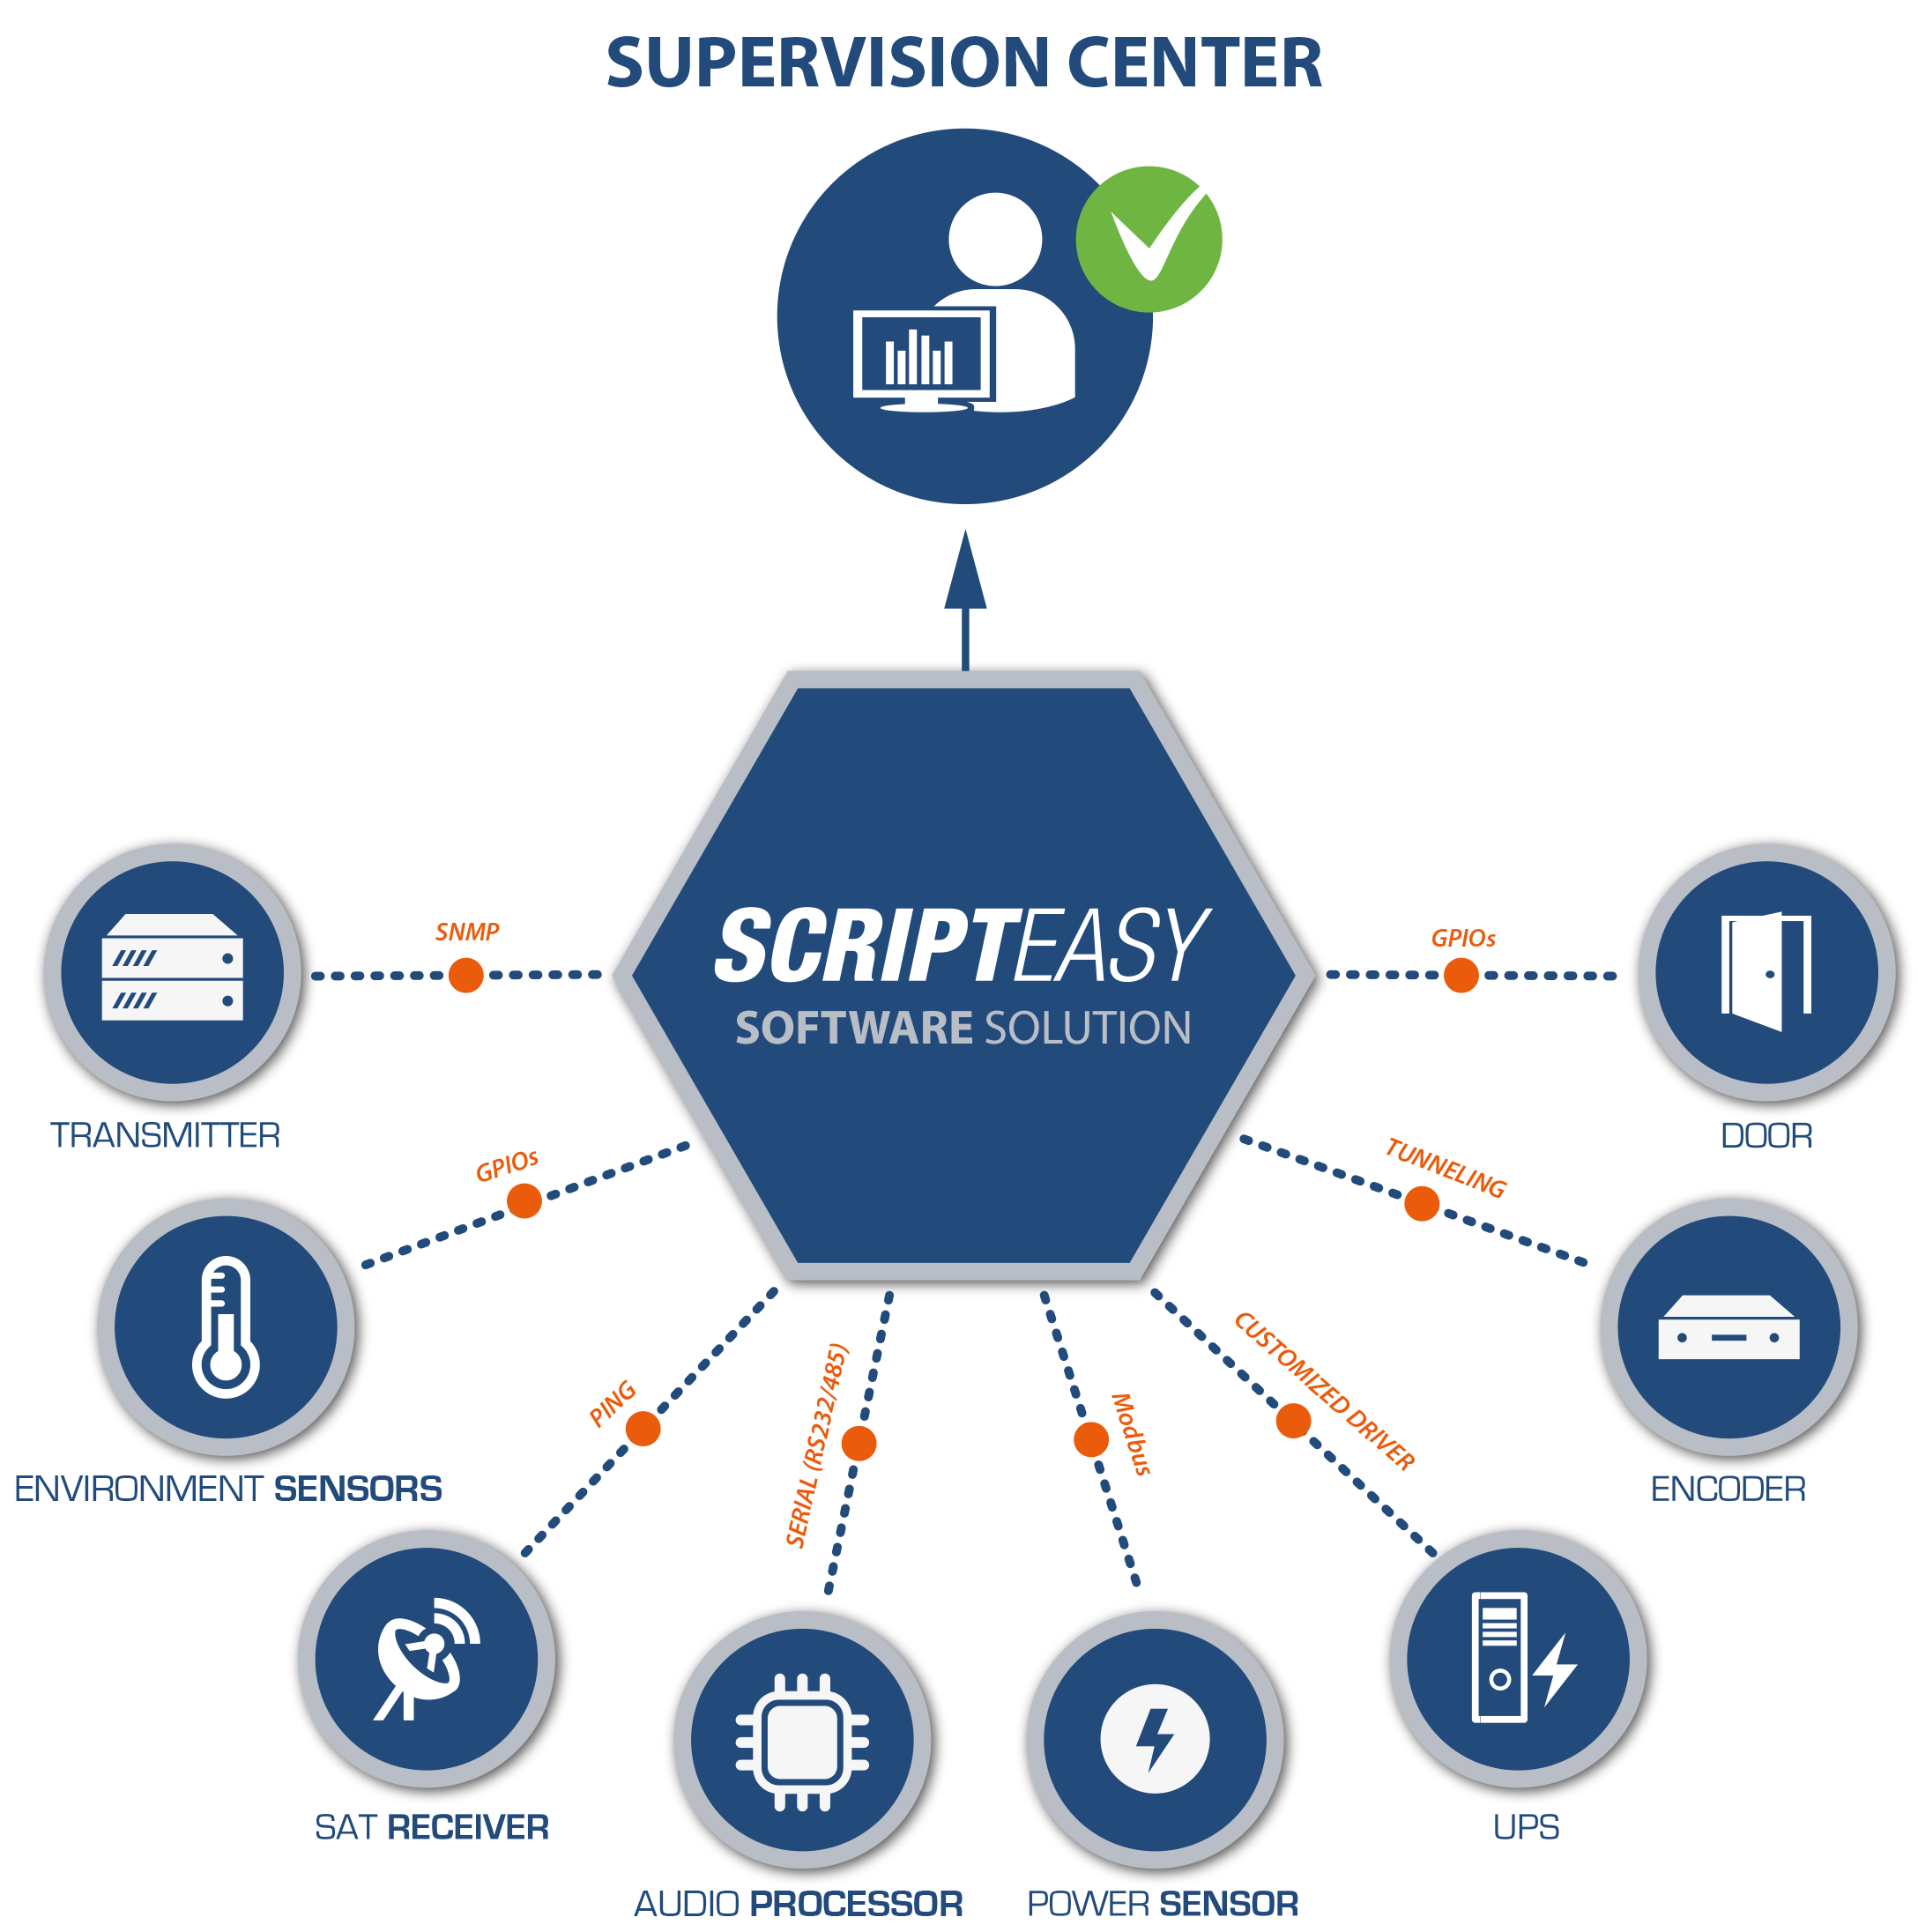 ScriptEasy Software Solution